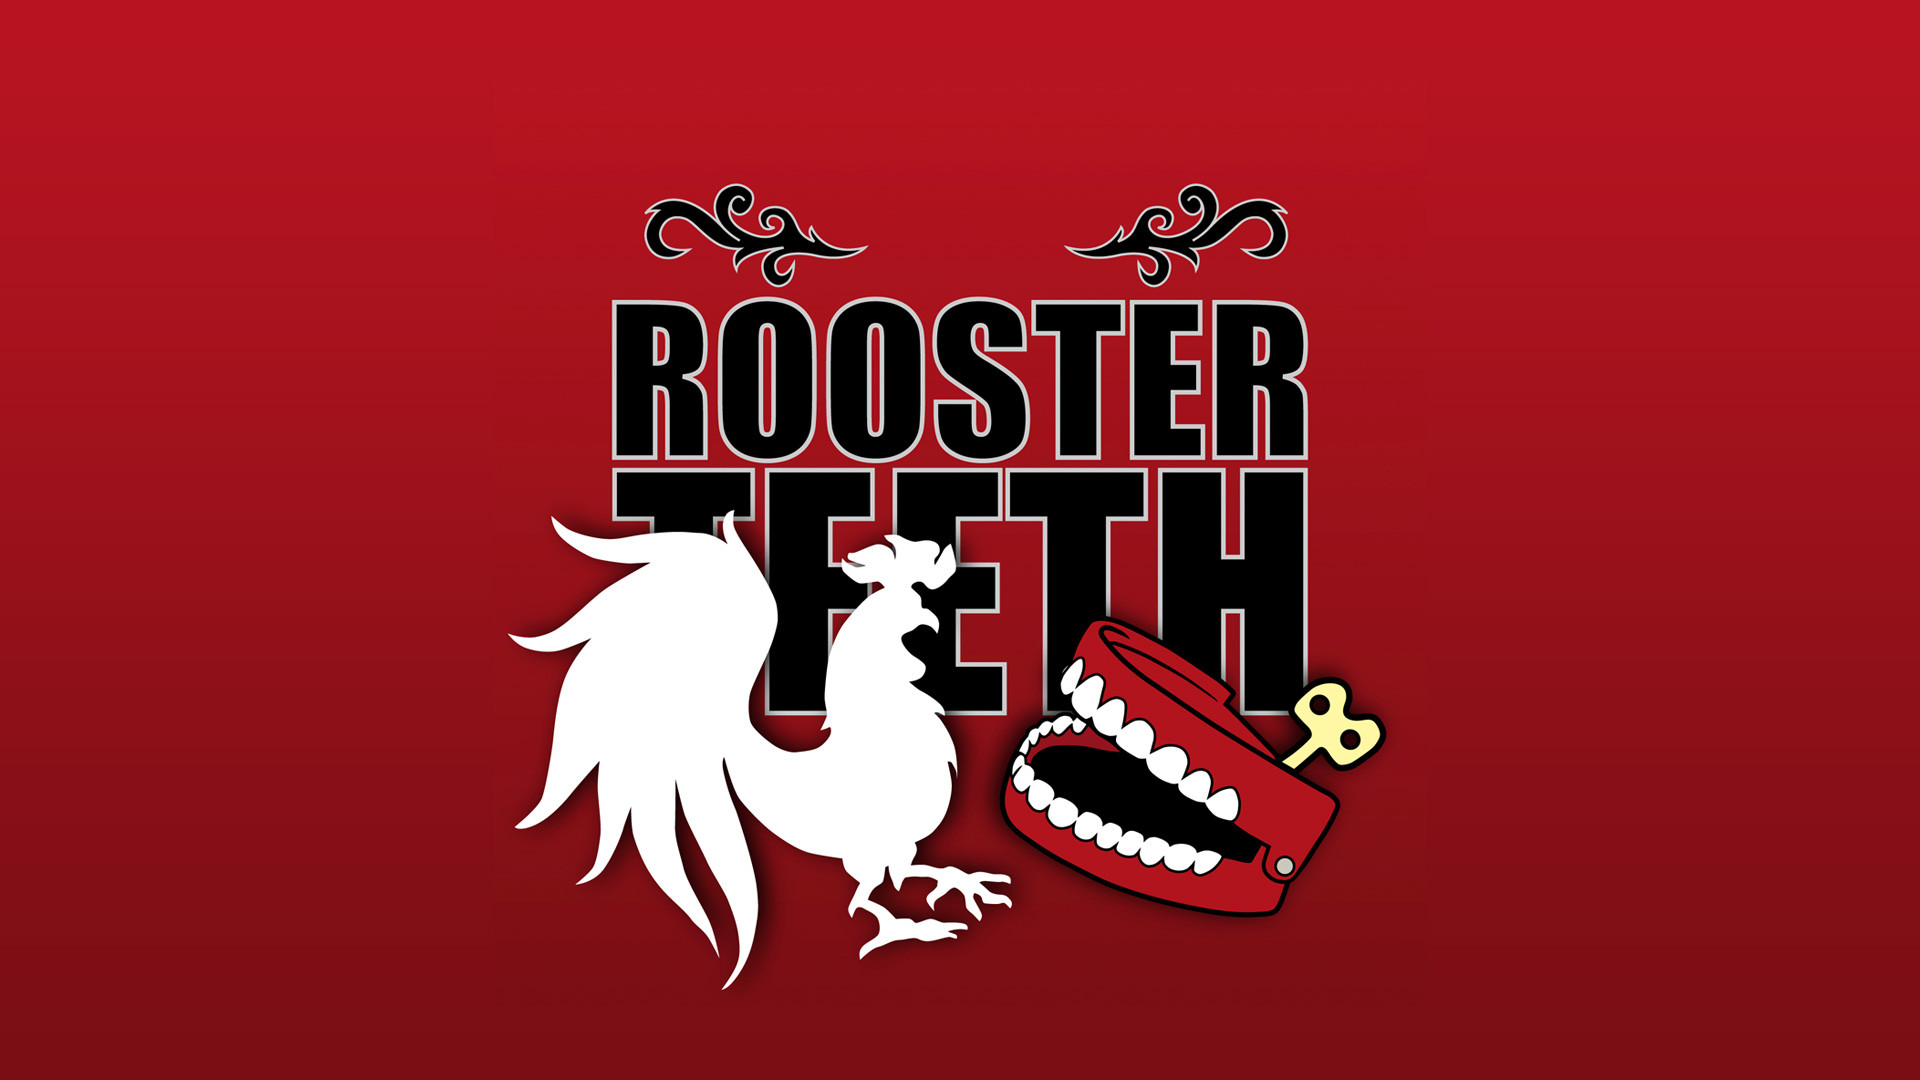 Res: 1920x1080, Rooster Teeth Connichi Micheal und Lindsay; Rooster Teeth Connichi